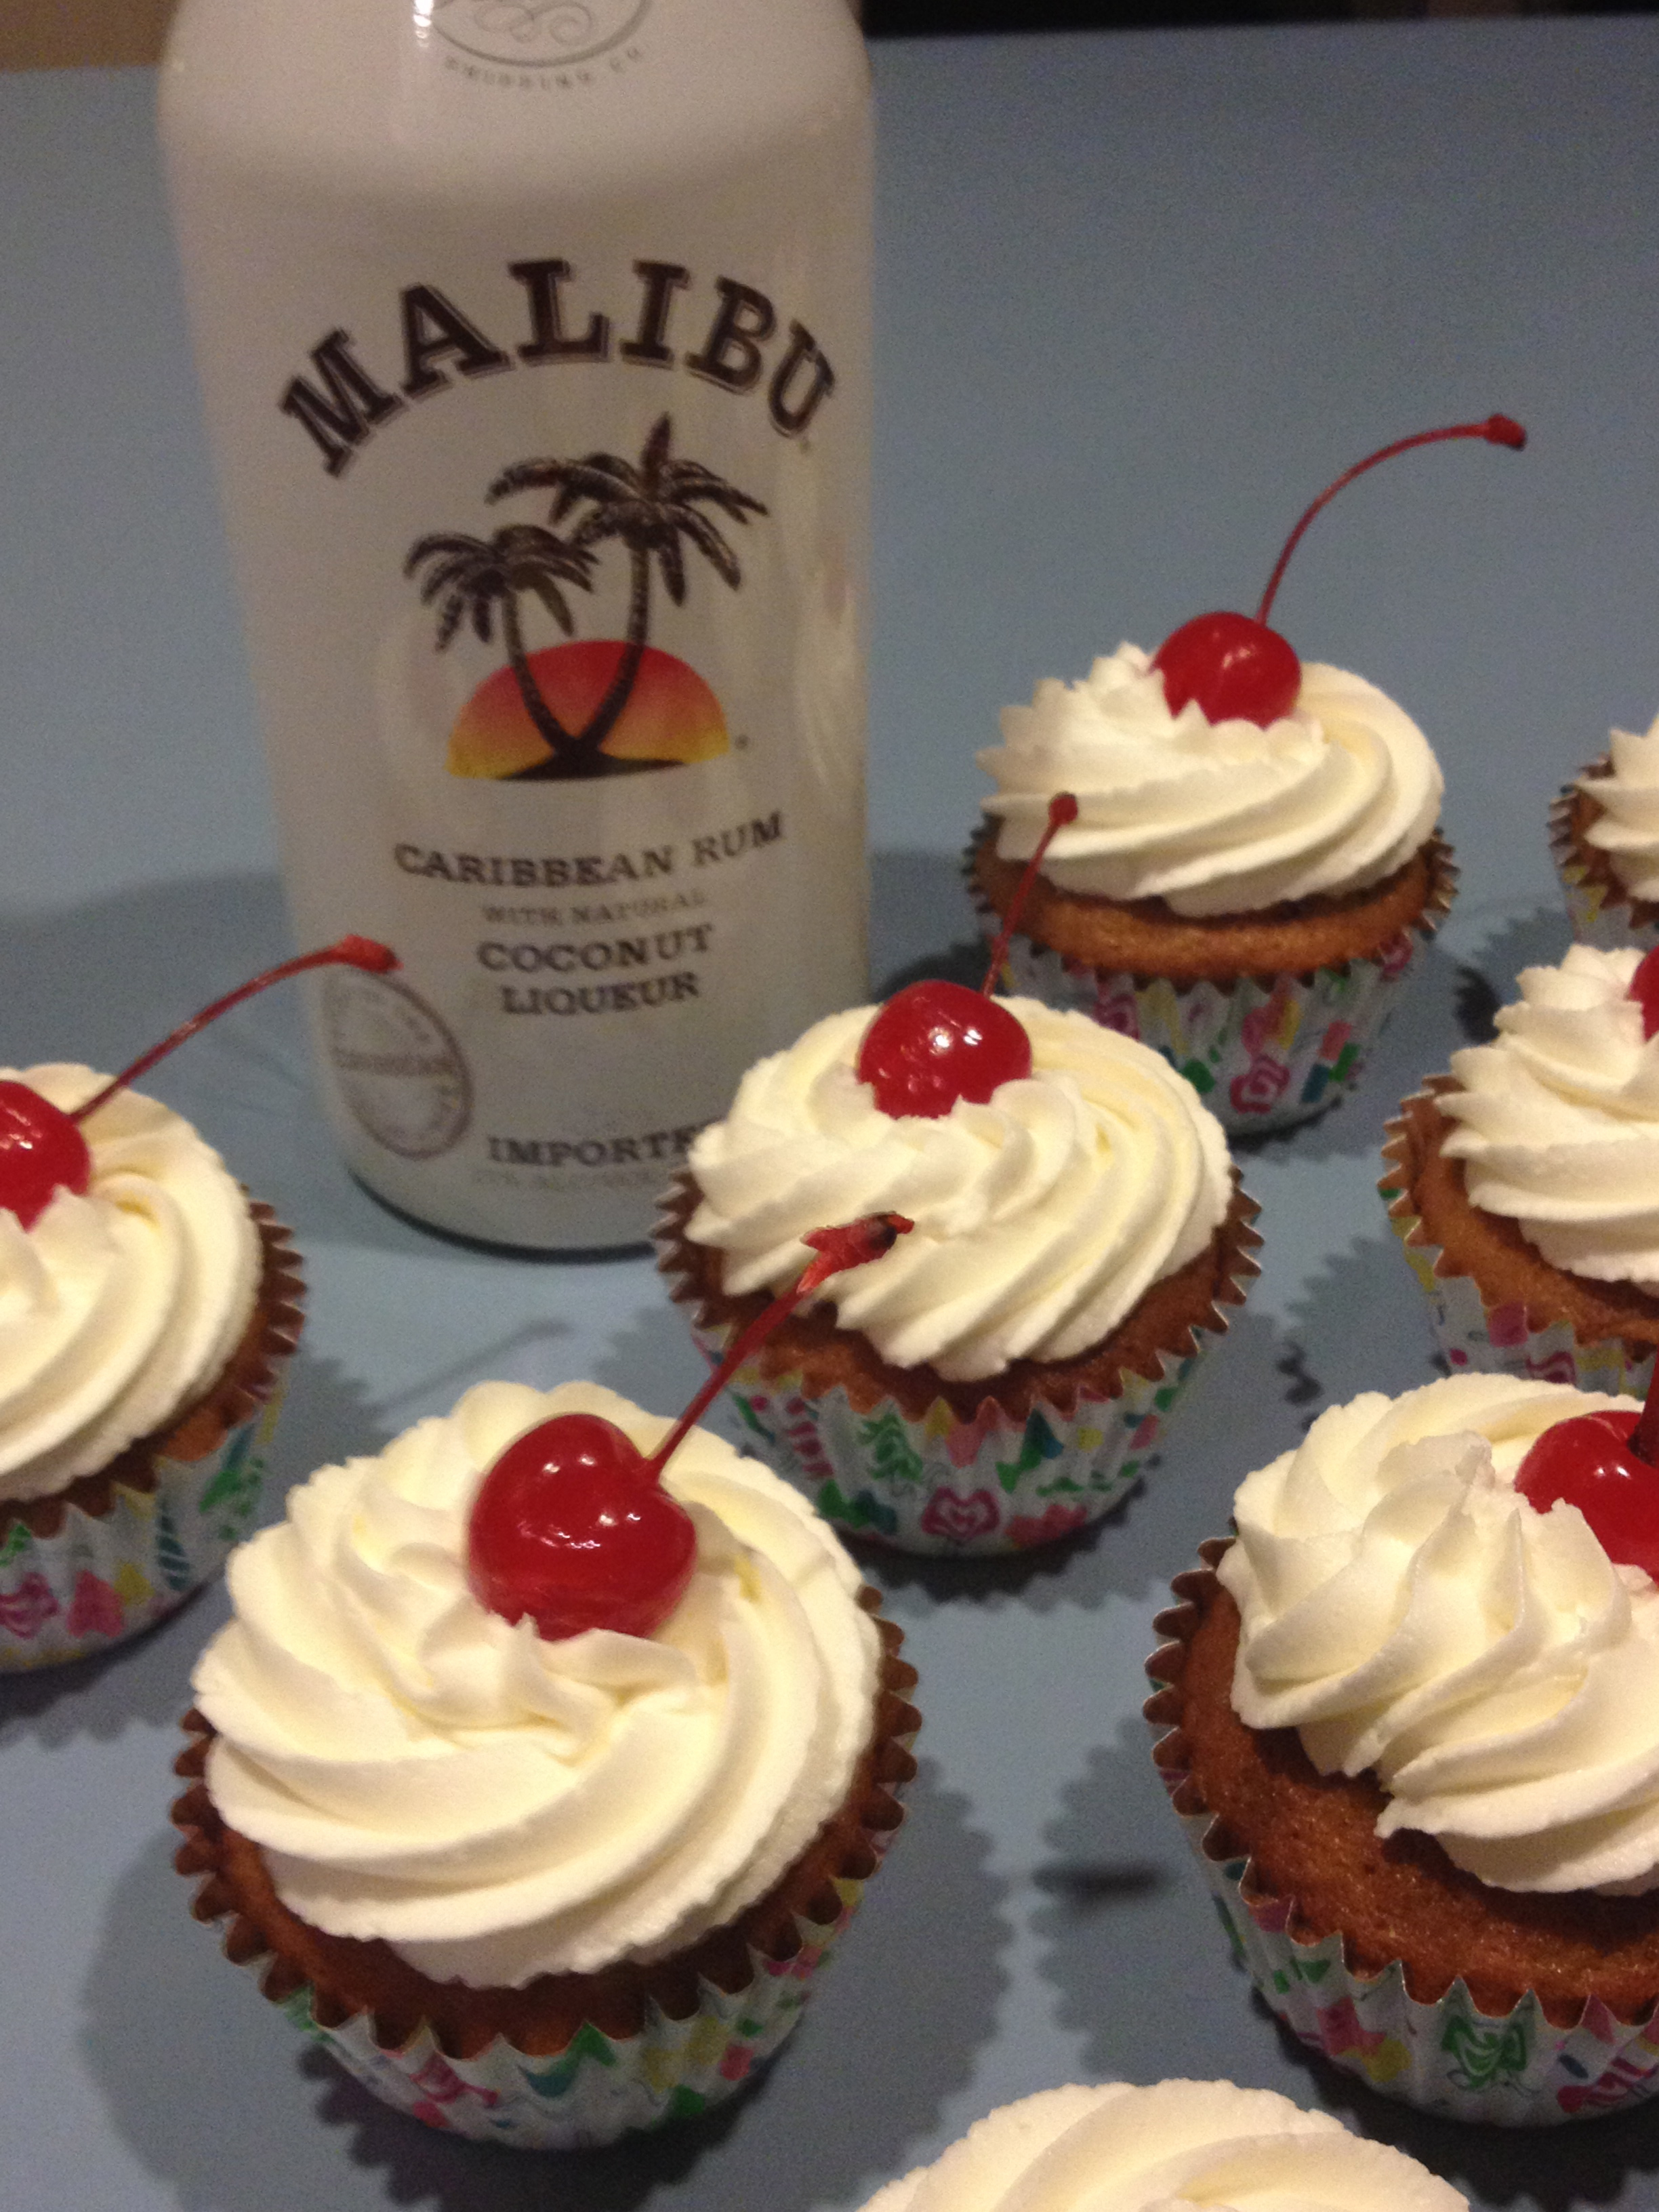 Pina Colada Cupcakes with Malibu Rum Frosting | buicupcakes